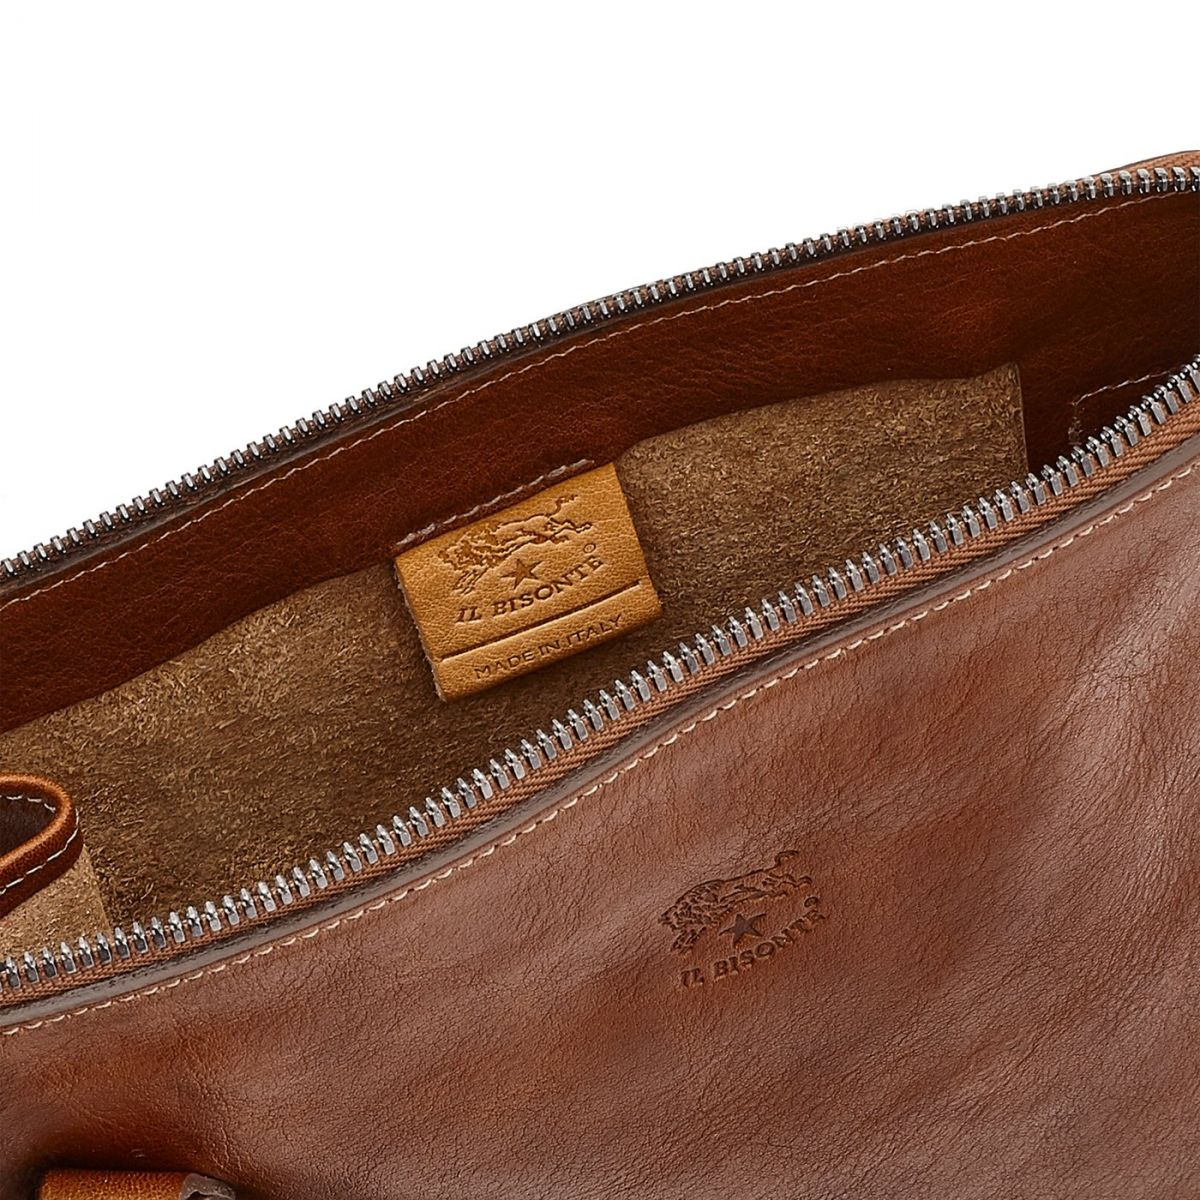 Men's Crossbody Bag Marea in Vintage Cowhide Leather BCR169 color Chocolate | Details